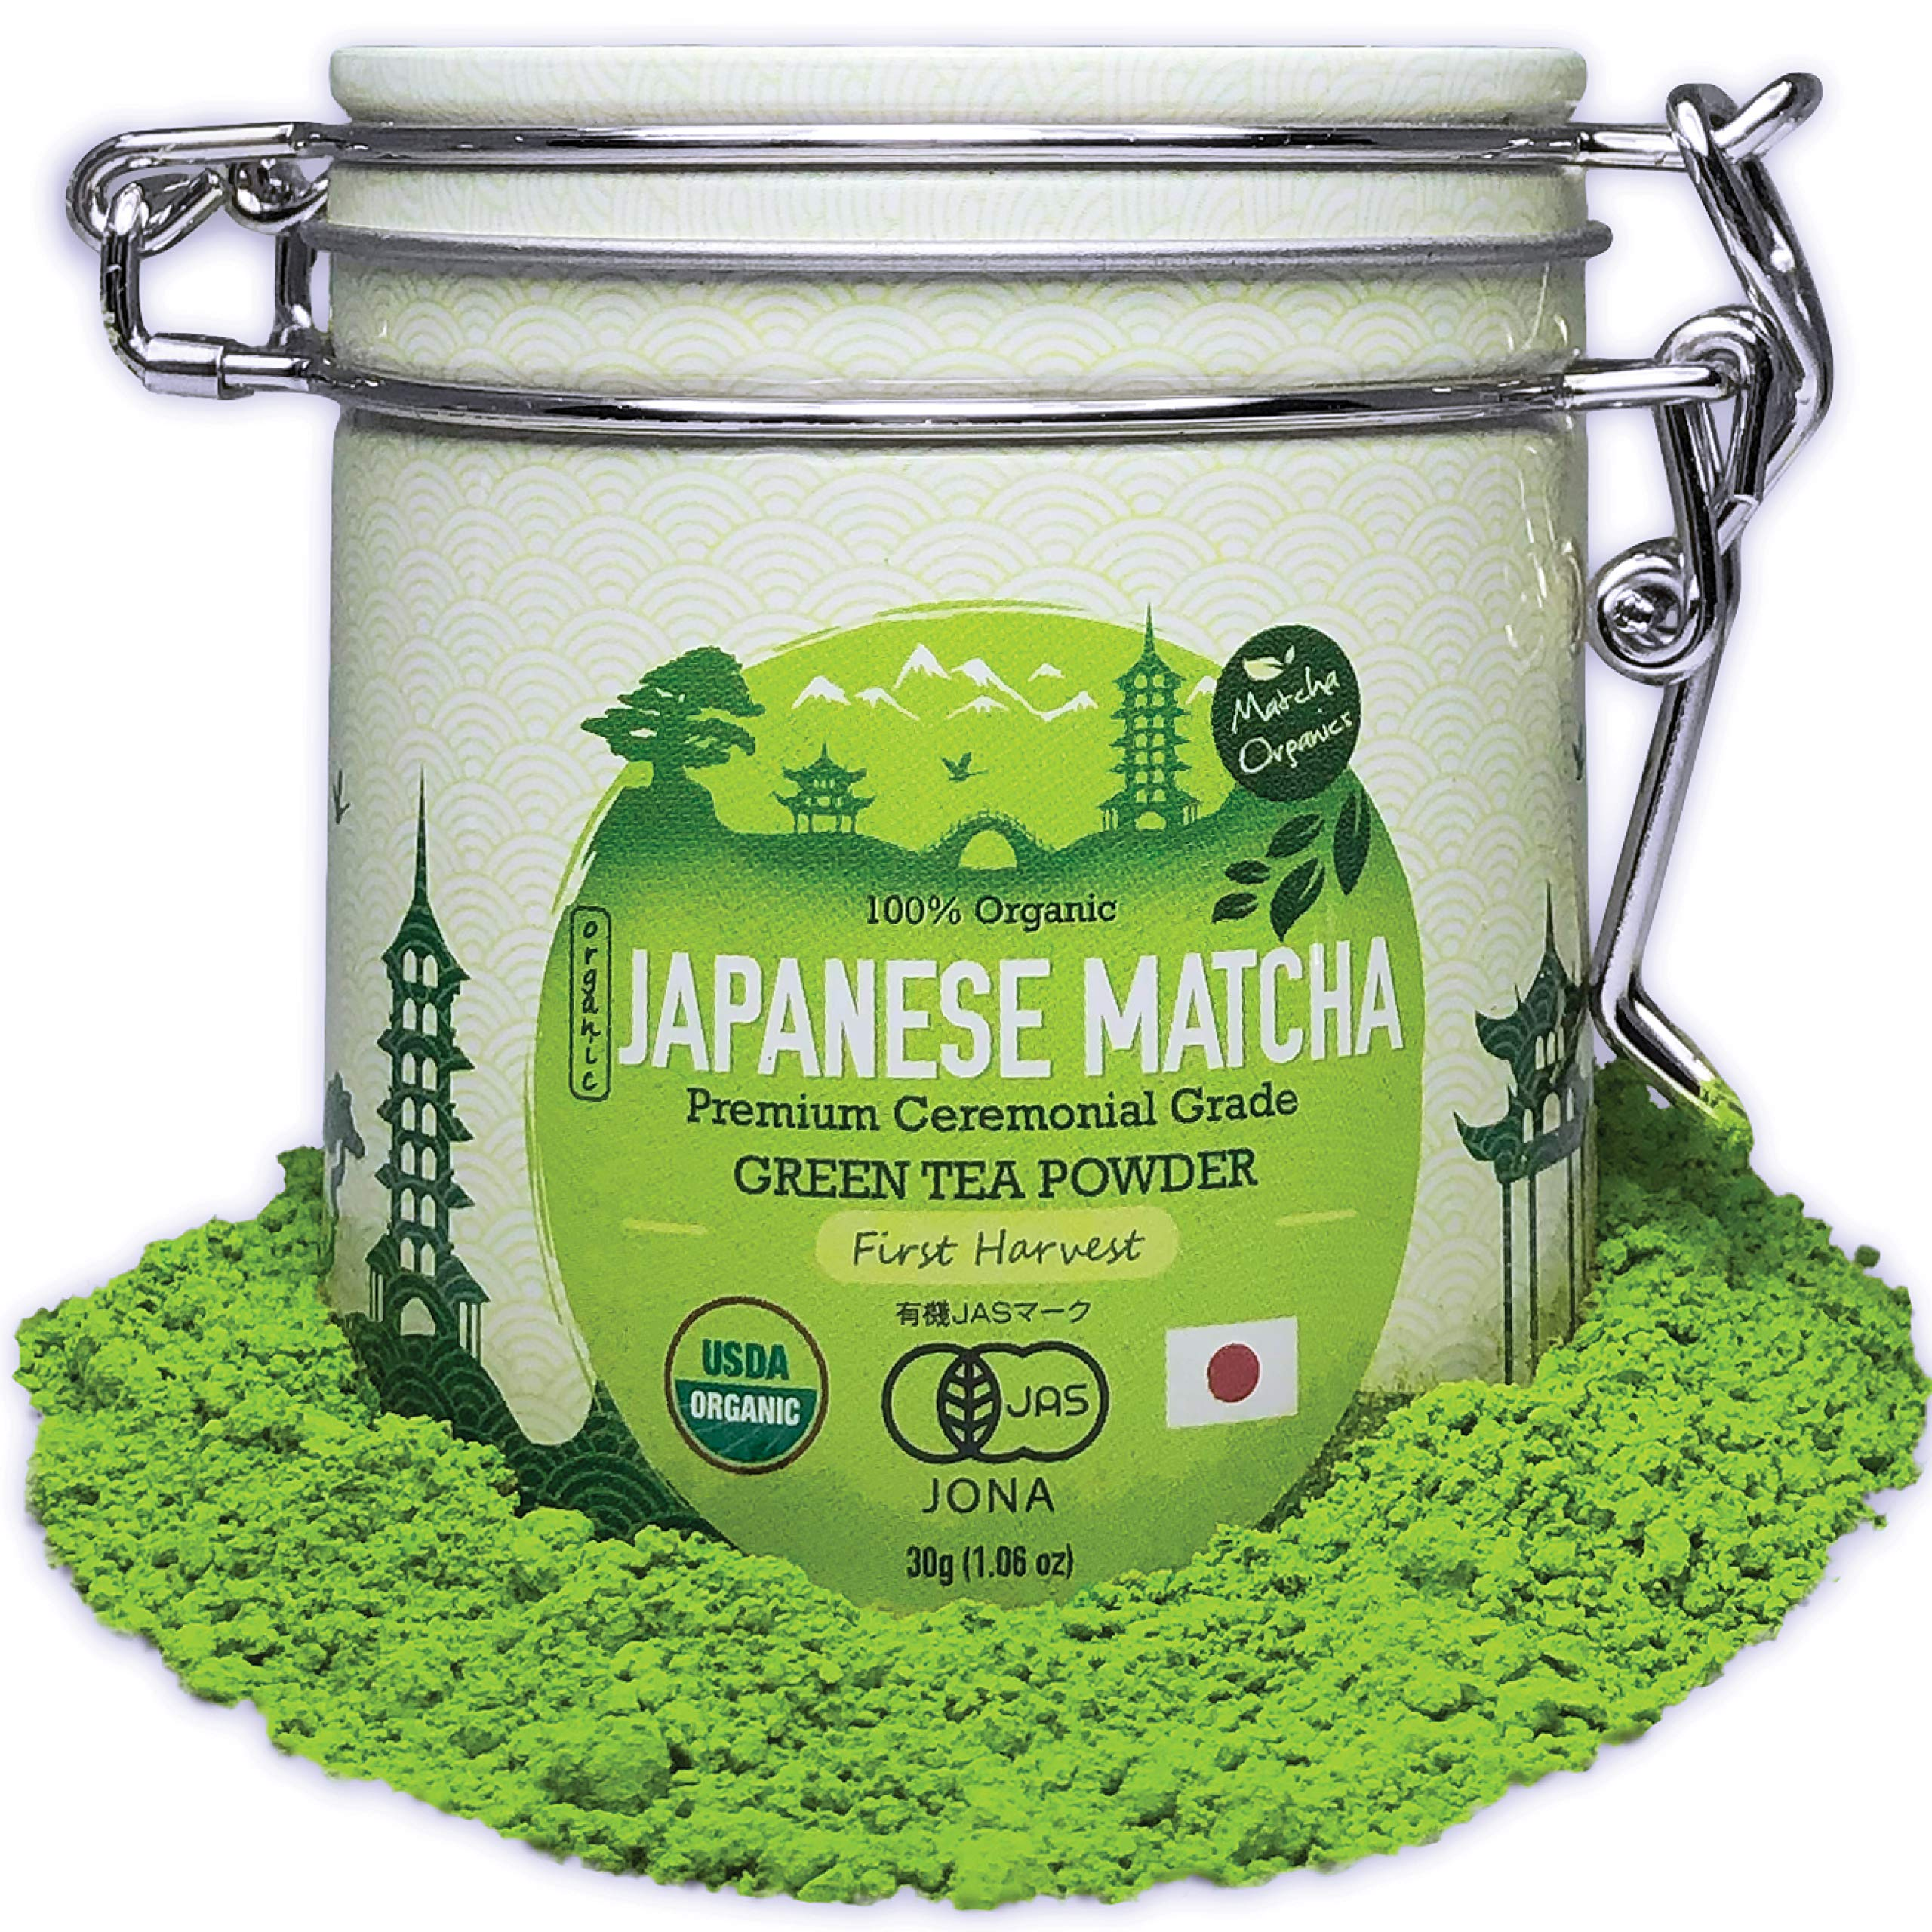 Premium Japanese Ceremonial Grade Matcha Green Tea Powder by Matcha Organics - 1st Harvest HIGHEST - USDA & JAS Organic - 30g Tin [1.06oz] - Perfect for Matcha Ceremonial Grade Latte, Shake, Smoothies & Baking